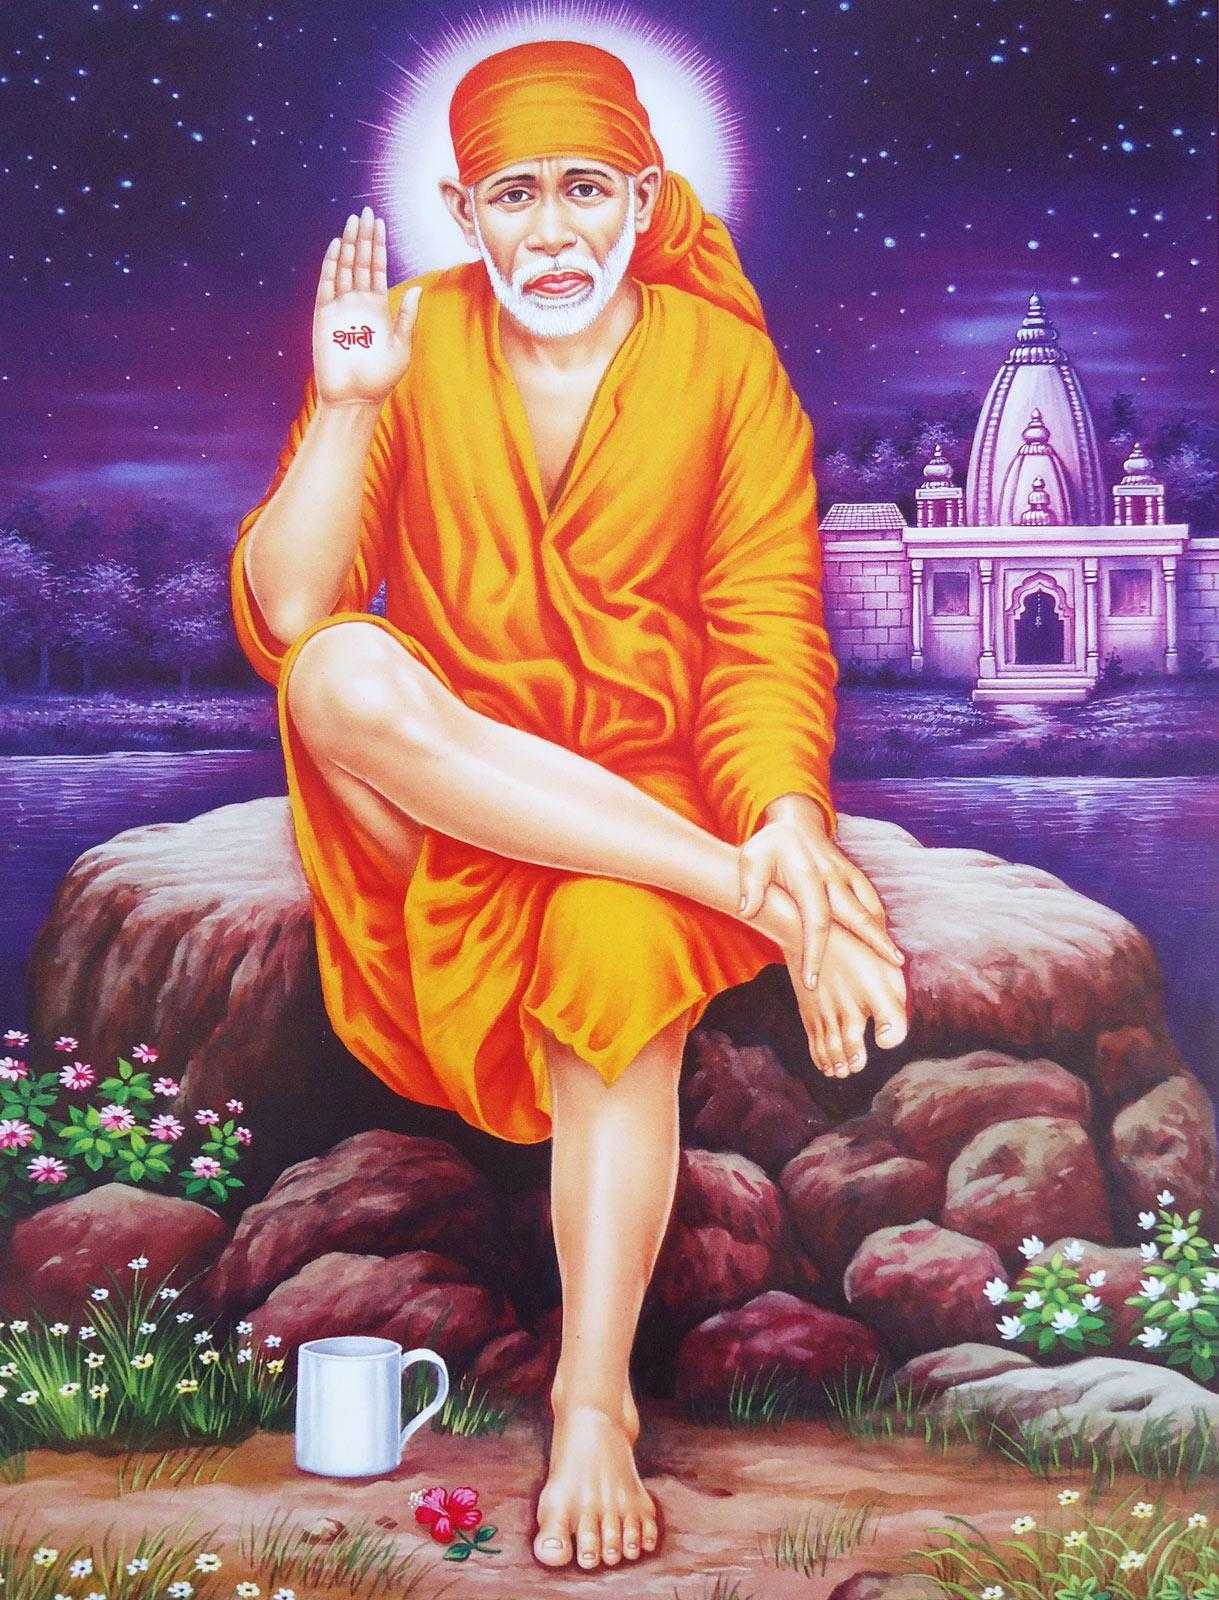 Download Sai Baba Images with Quotes - Download Sai Baba Images with Quotes